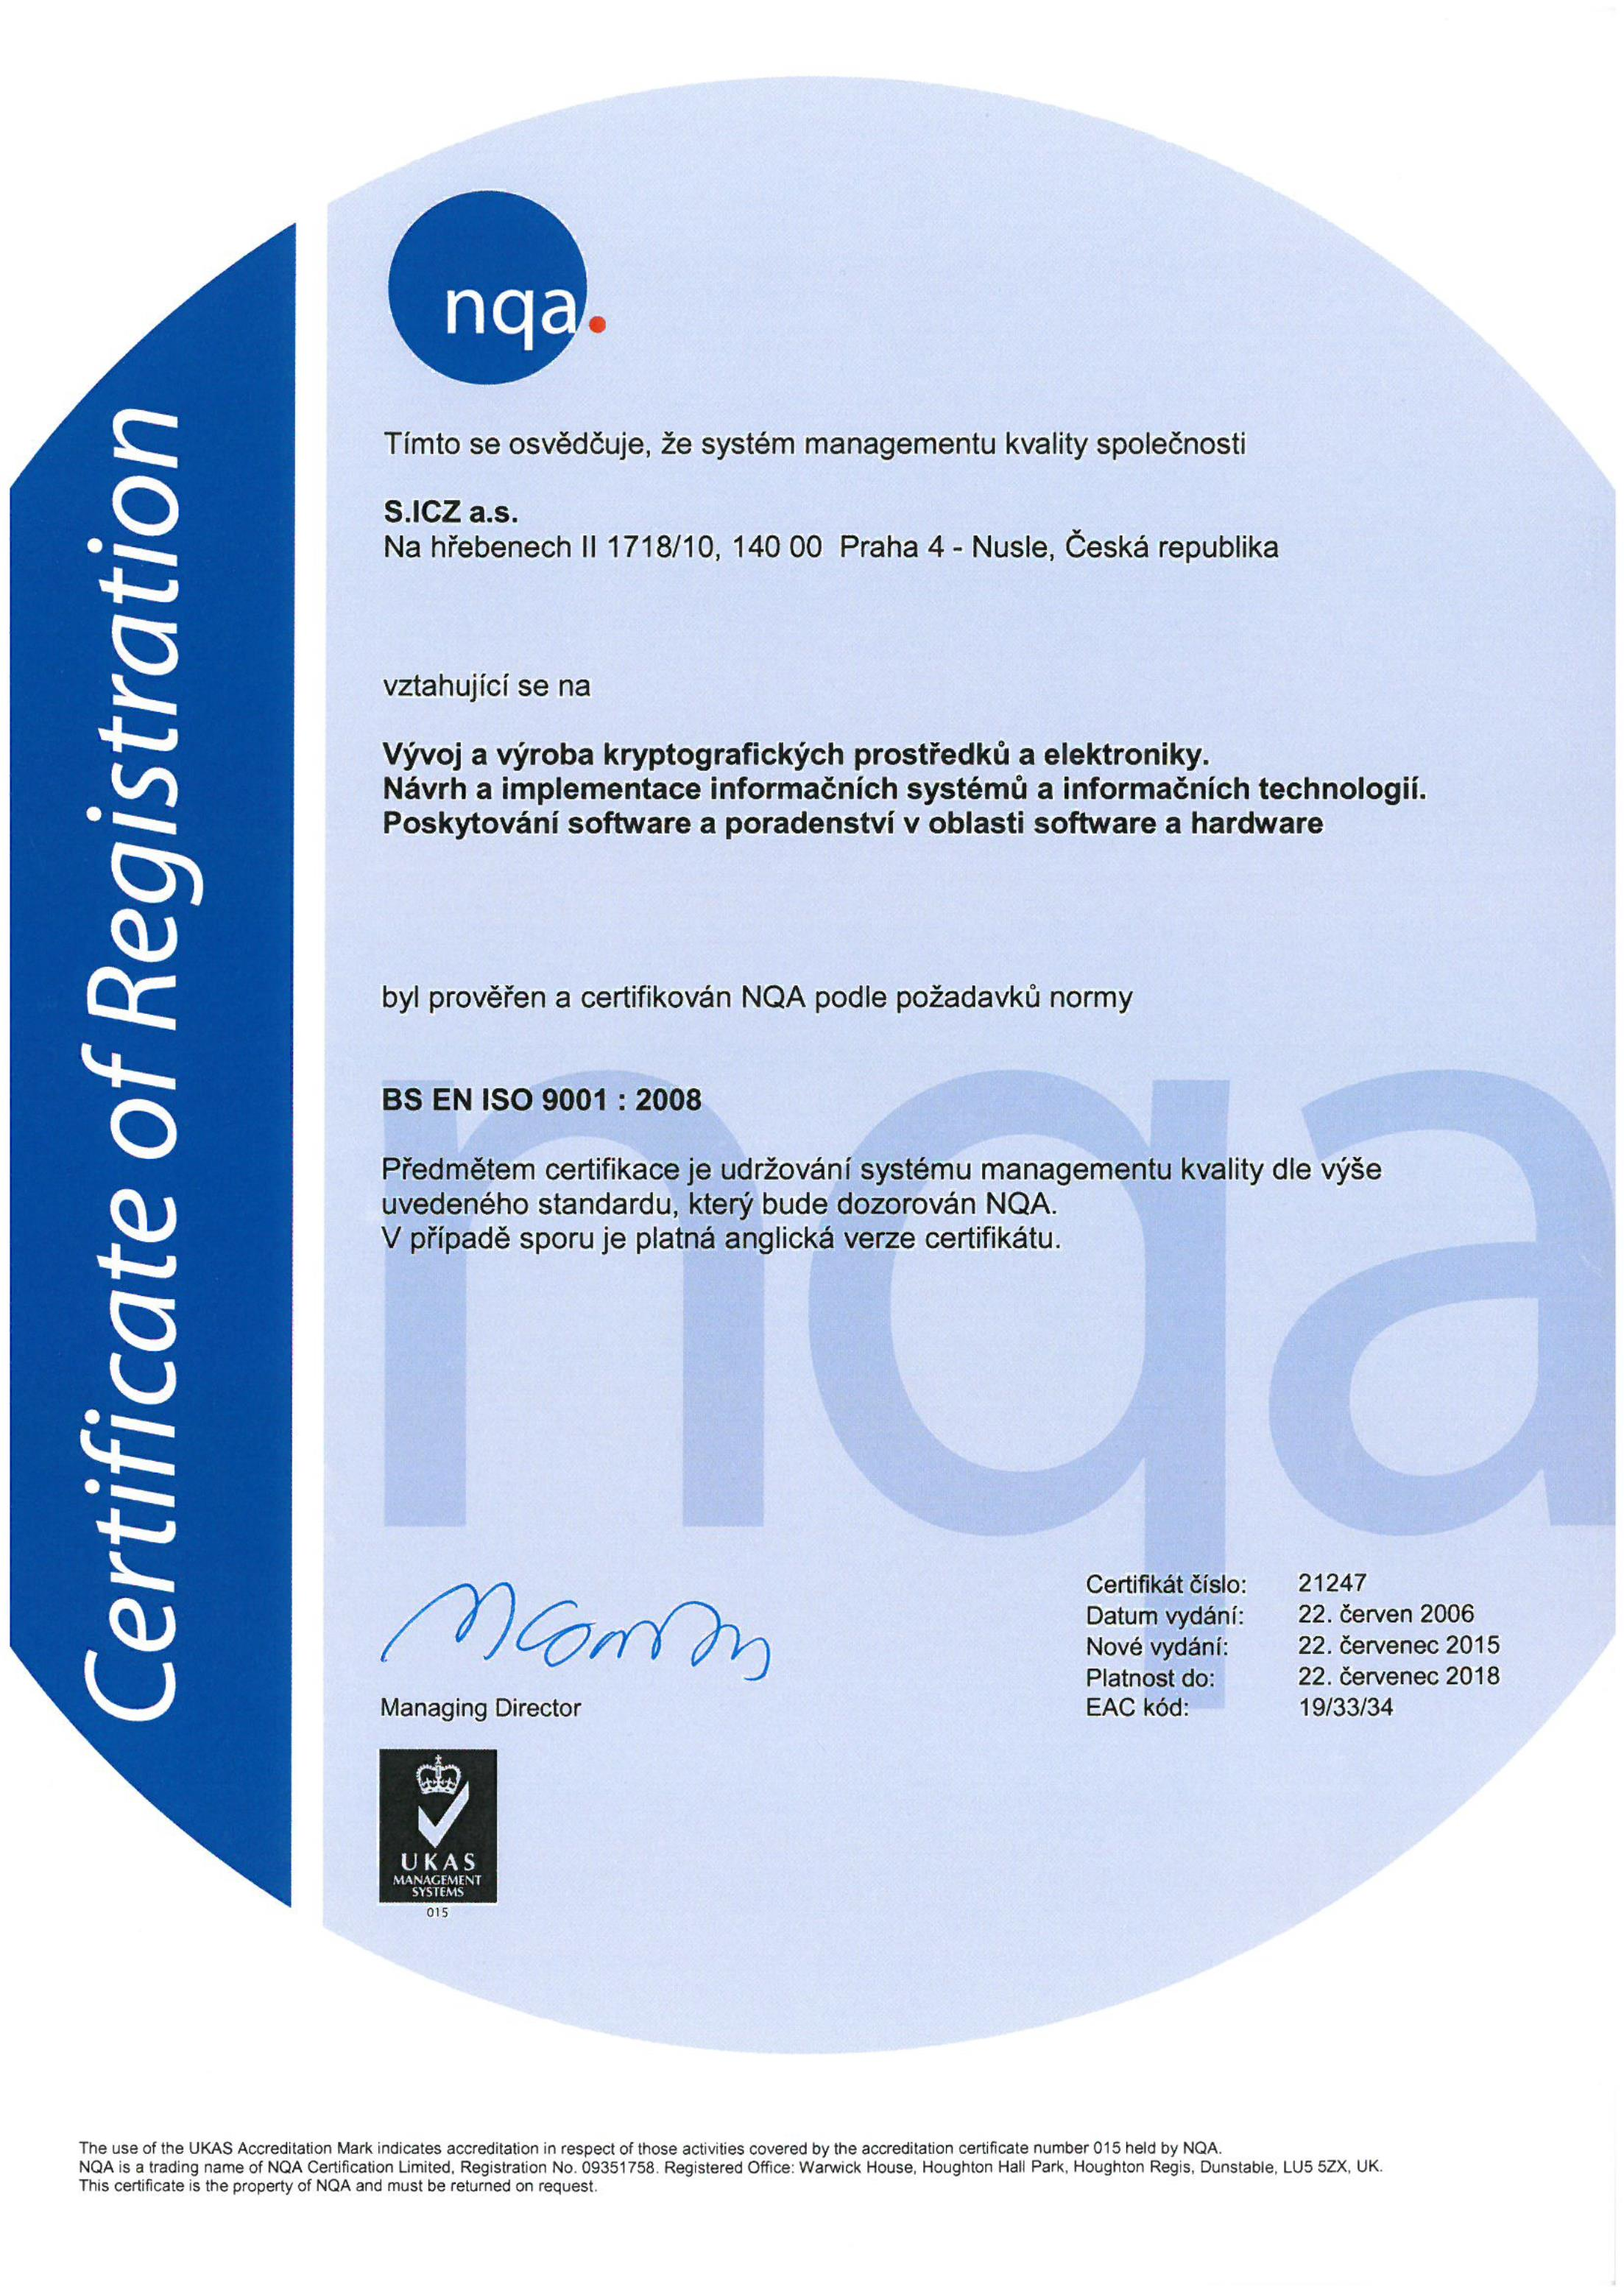 Quality certificates icz group implementing of certified managed systems provides effective safe and high quality services meeting customers requirements xflitez Image collections